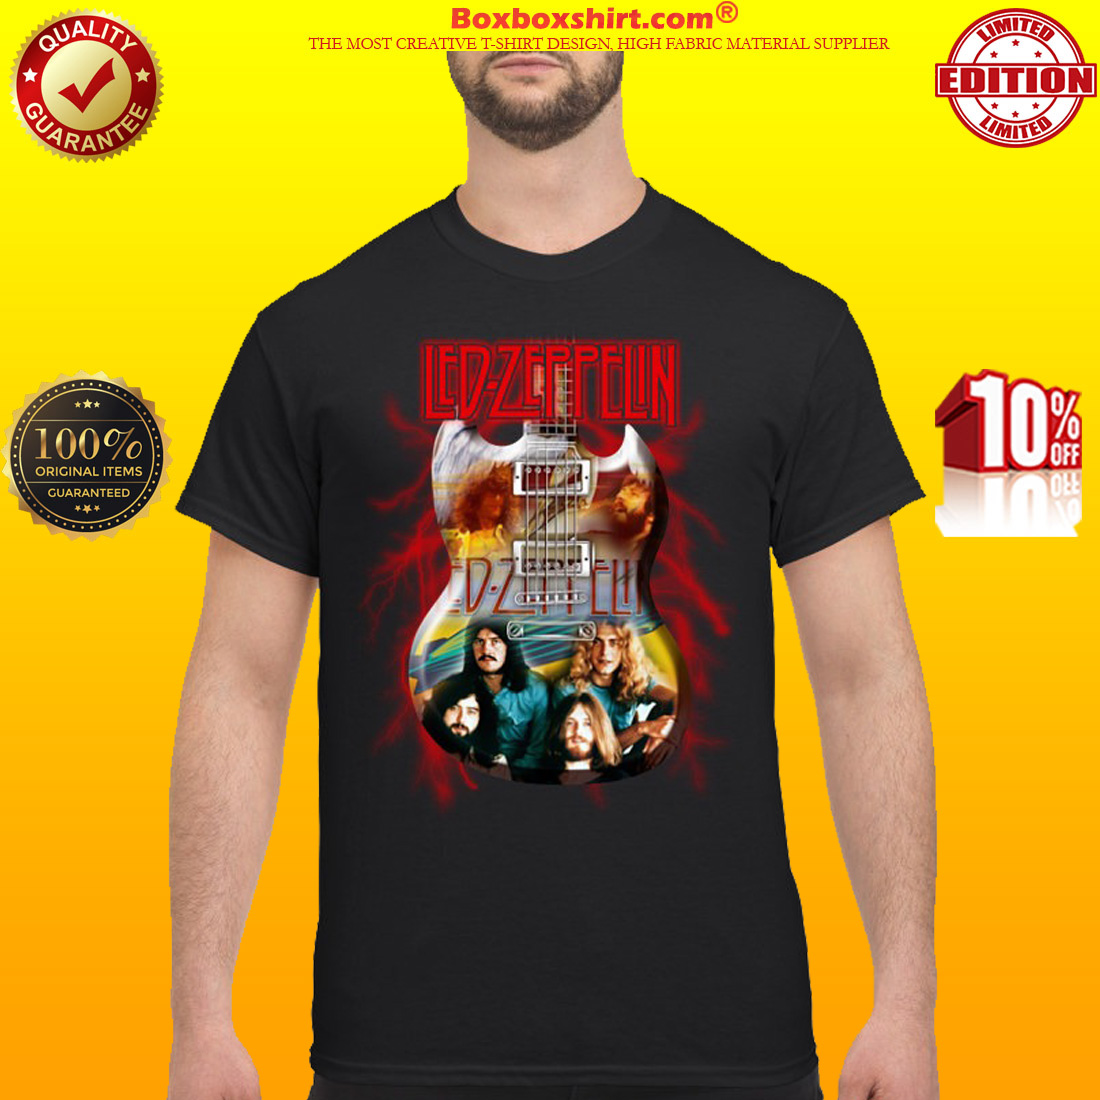 Led Zeppelin and guitar shirt